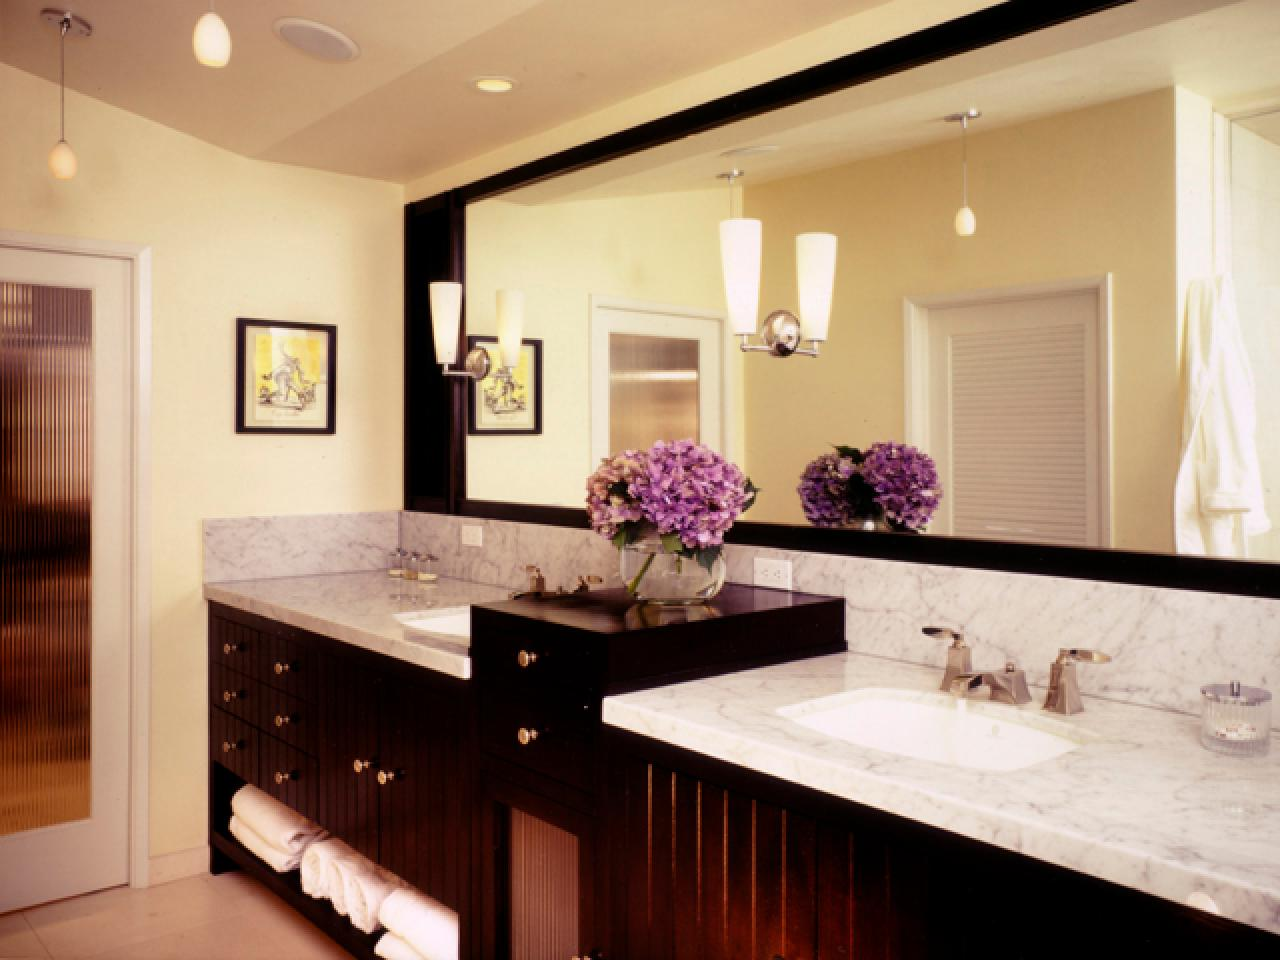 Designing Bathroom Lighting | HGTV on master bathroom design examples, master bathroom light, master bathroom color ideas, master bathroom color palettes, master bathroom interior design, master bathroom with jacuzzi tub, master bedroom lighting design, master bathroom layout design, master bathroom tile designs,